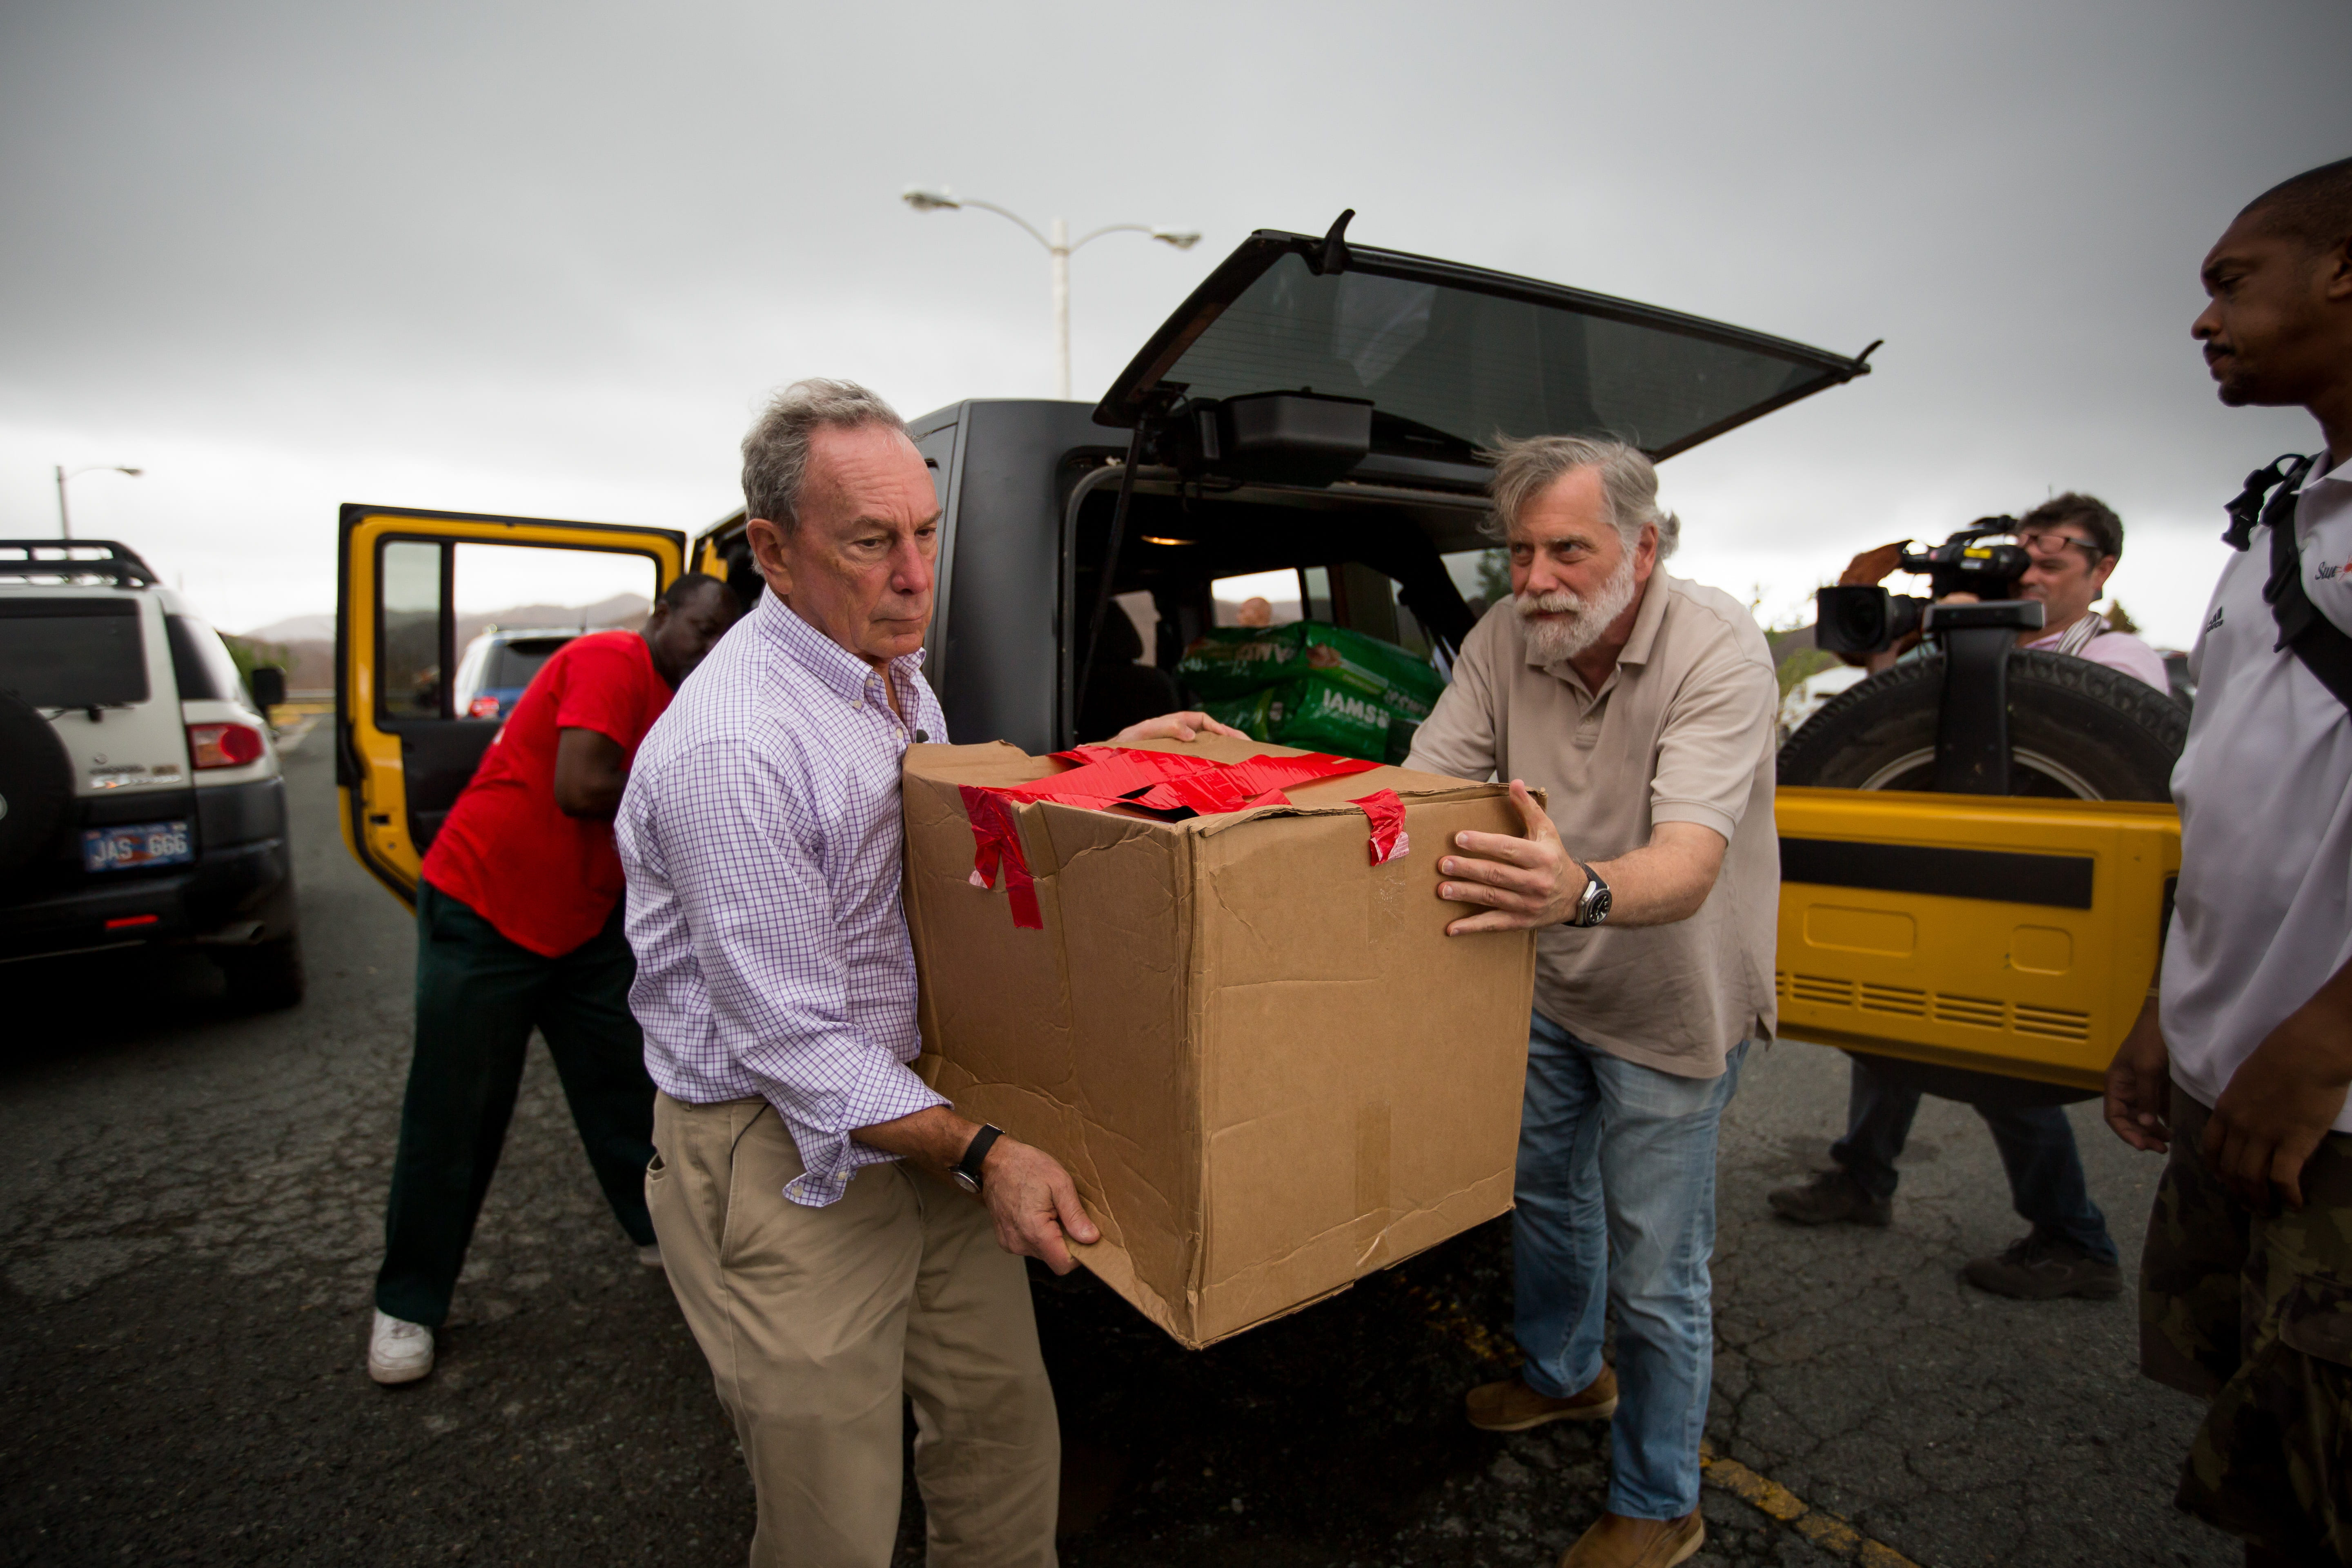 Mike Bloomberg carries boxes of supplies in the U.S. Virgin Islands following the hurricanes of 2017.